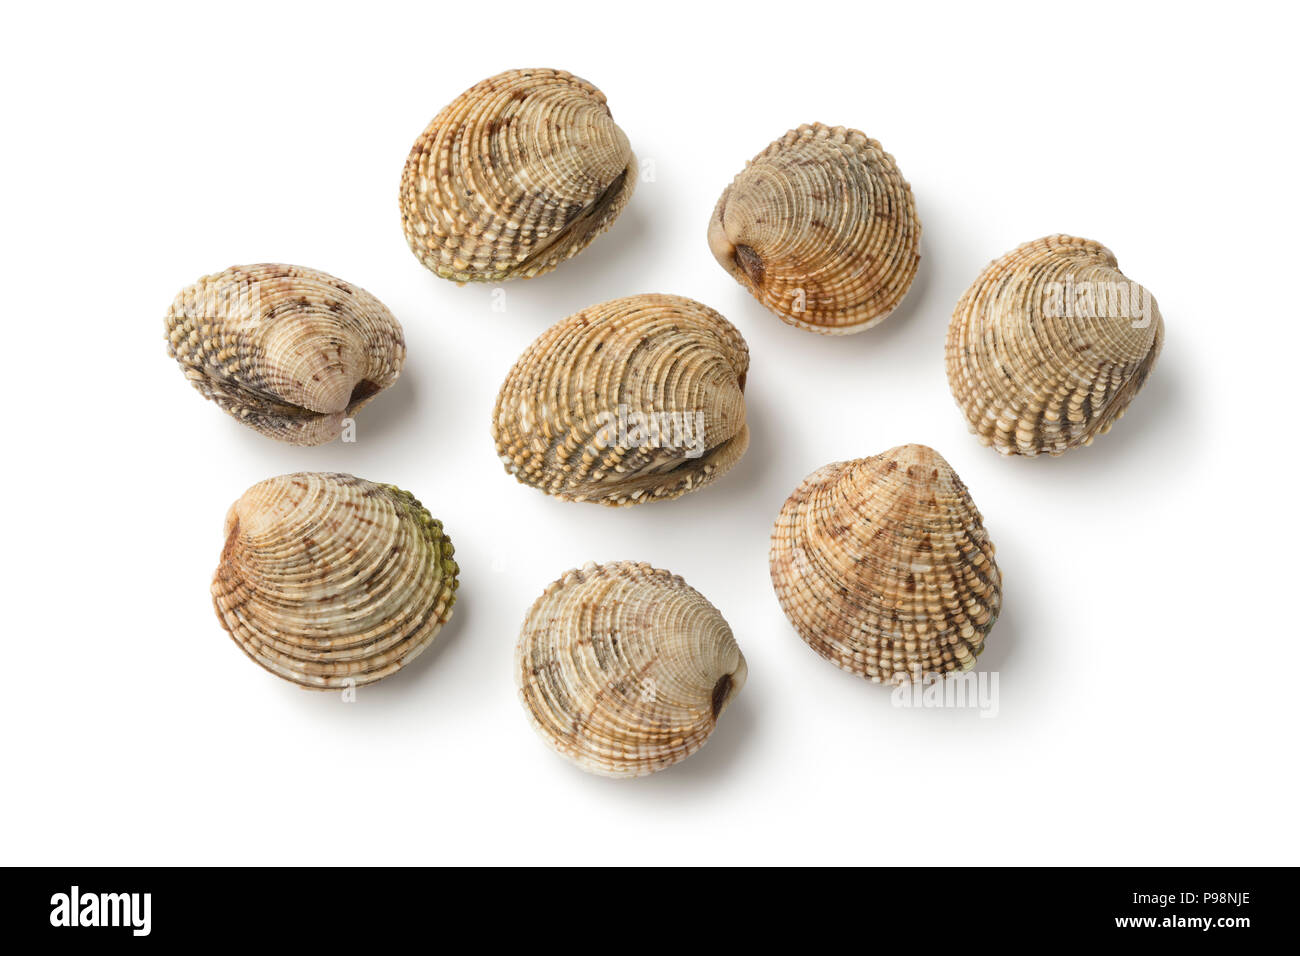 Fresh raw warty venus clams isolated on white background - Stock Image